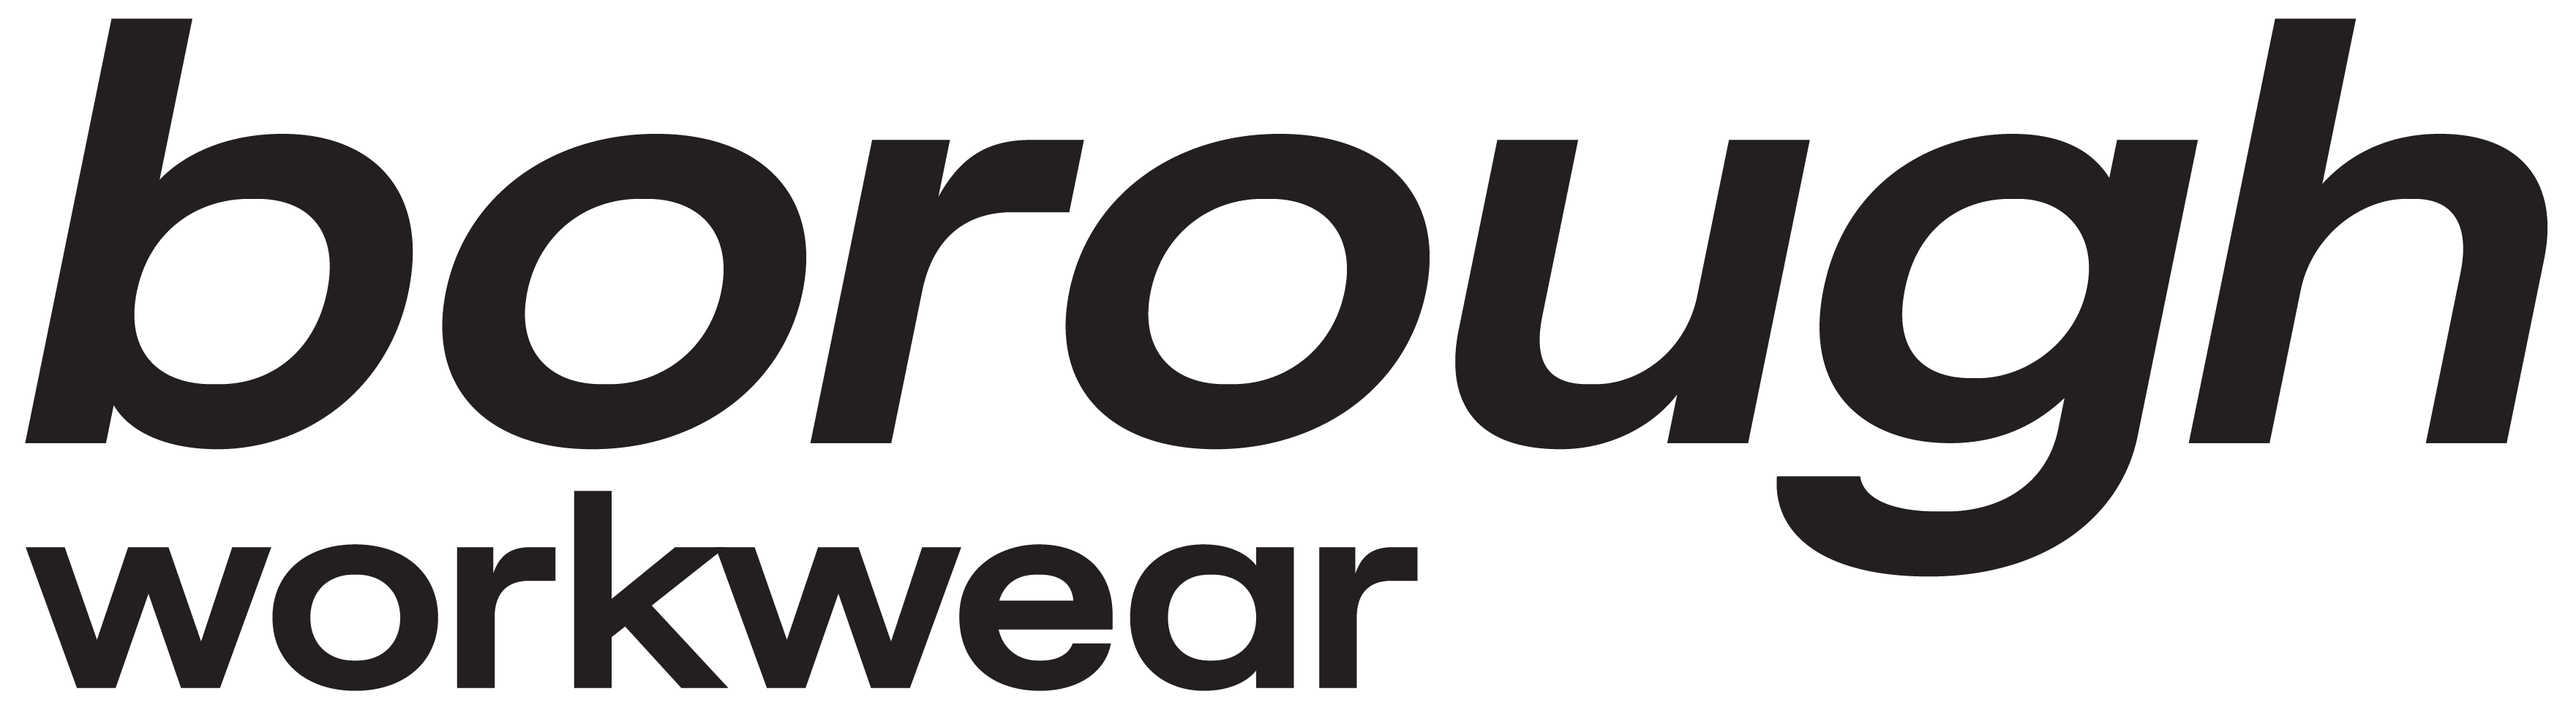 BOROUGH WORKWEAR